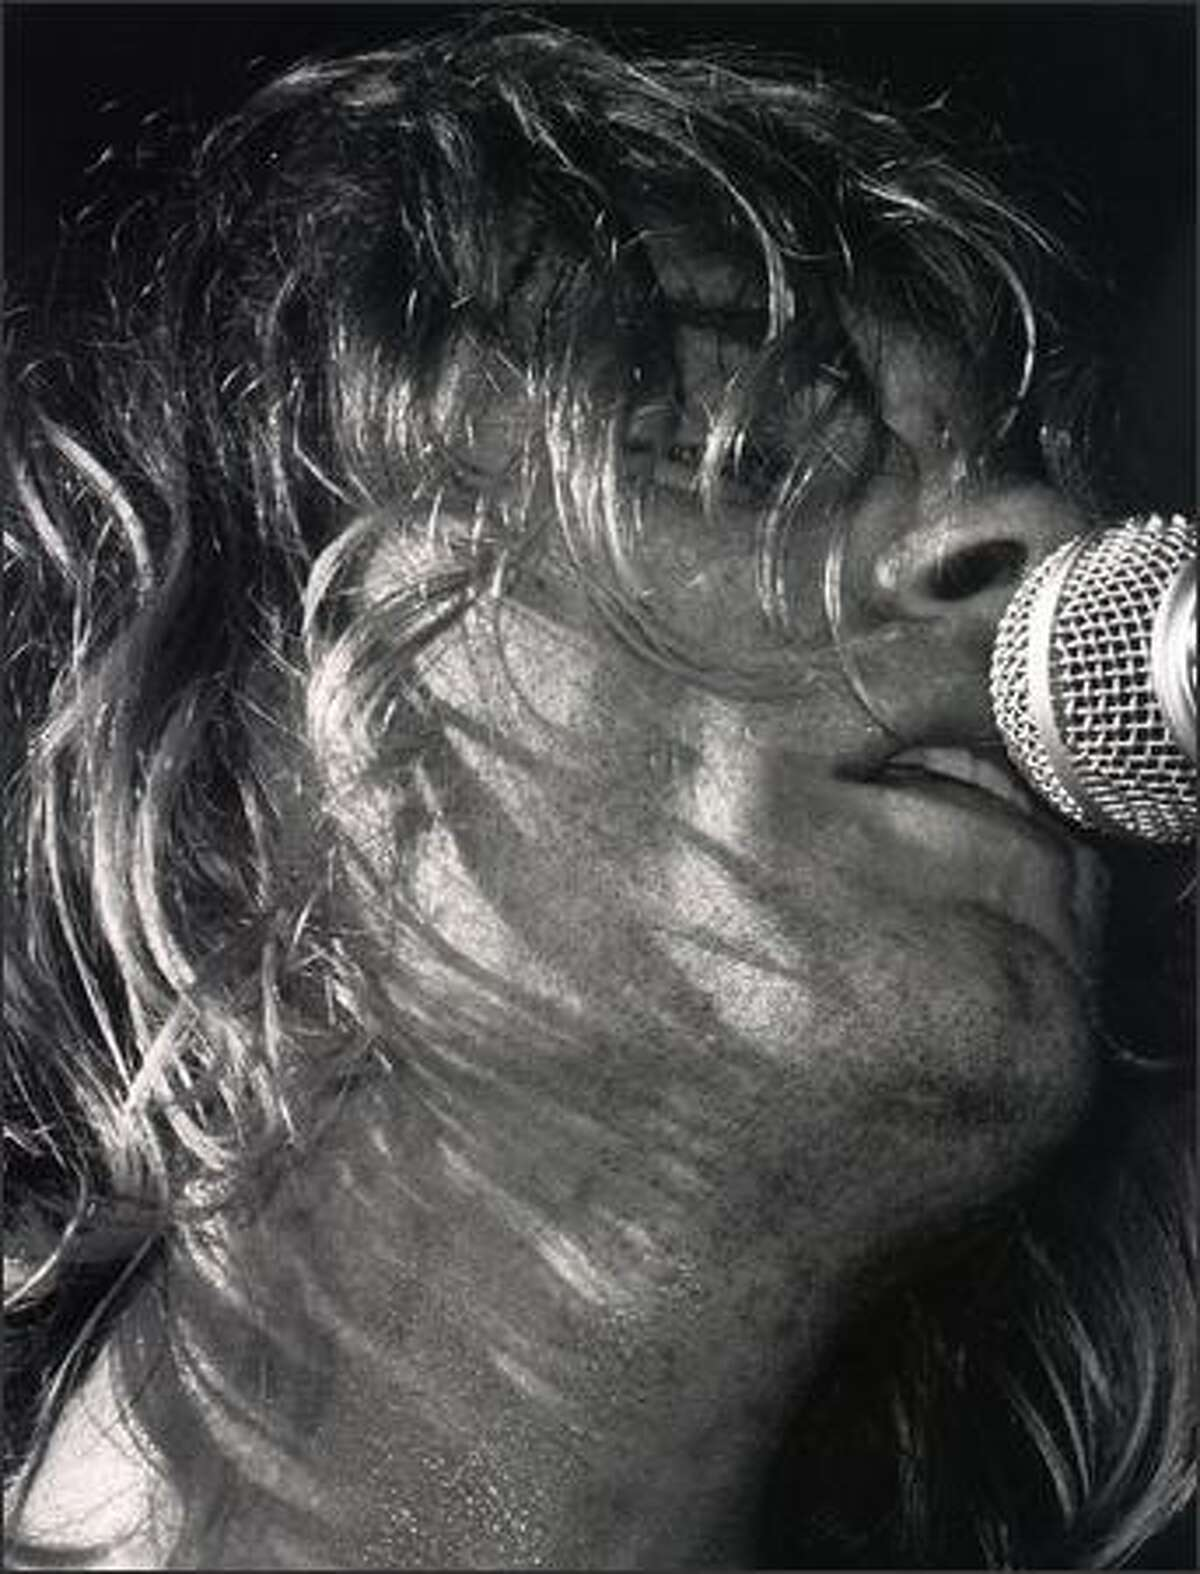 Kurt Cobain sings during Nirvana's concert at the Paramount in Seattle on Halloween 1991.